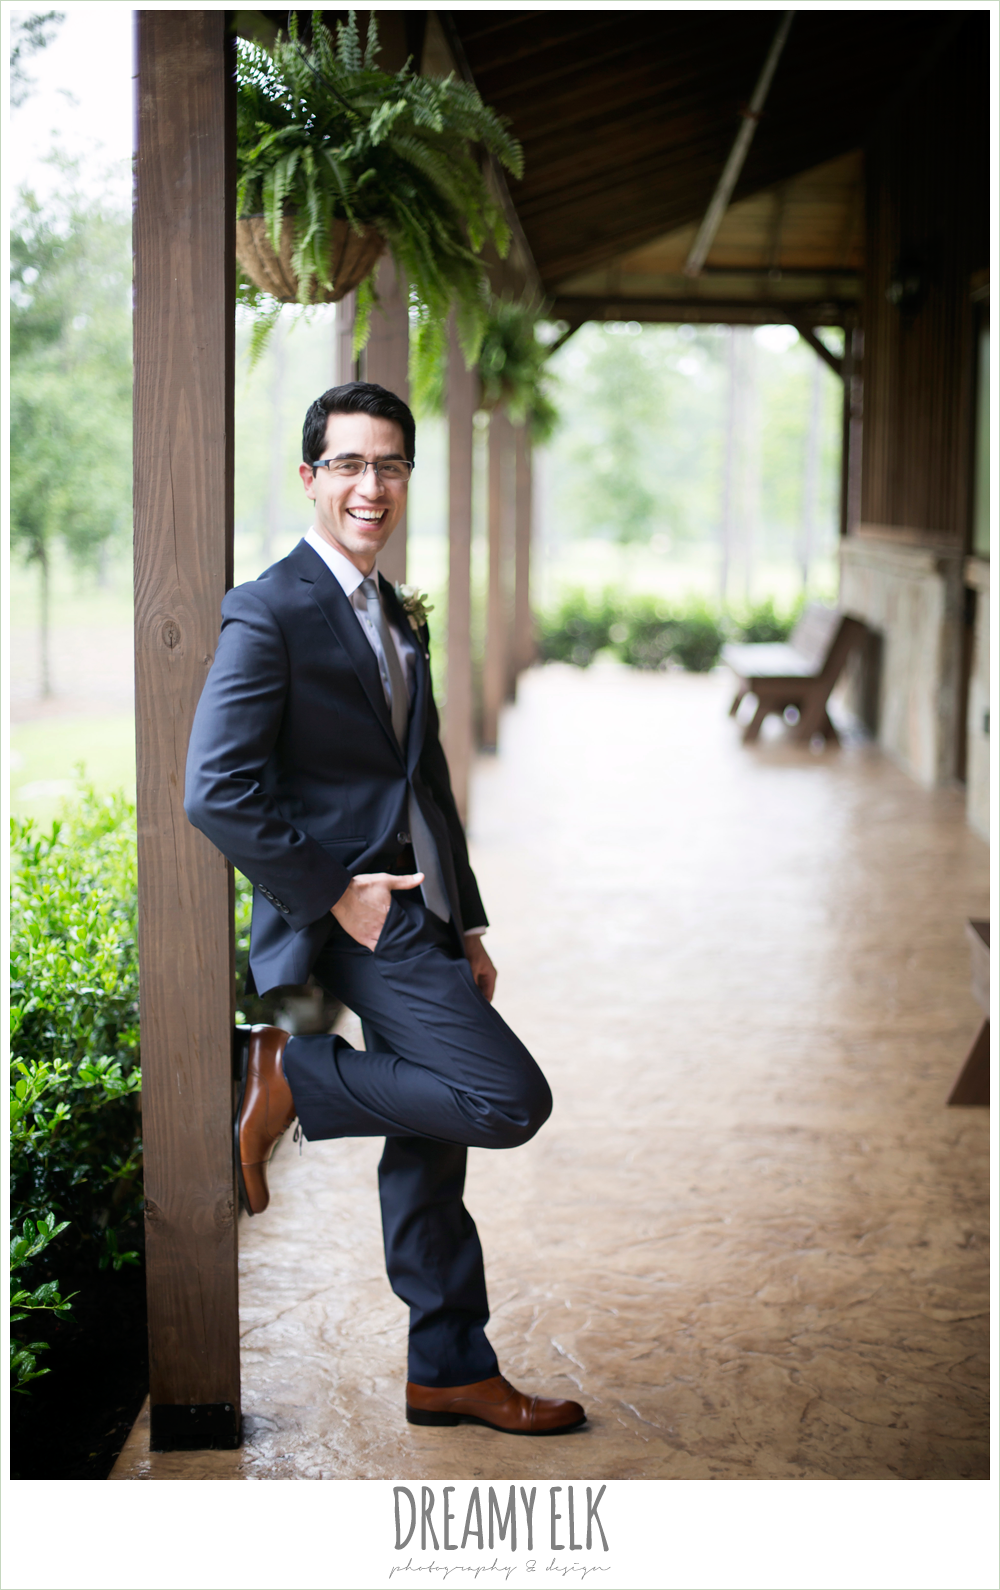 groom in navy suit, navy gray and white wedding, spring rainy wedding at crystal springs, houston, texas {dreamy elk photography and design}